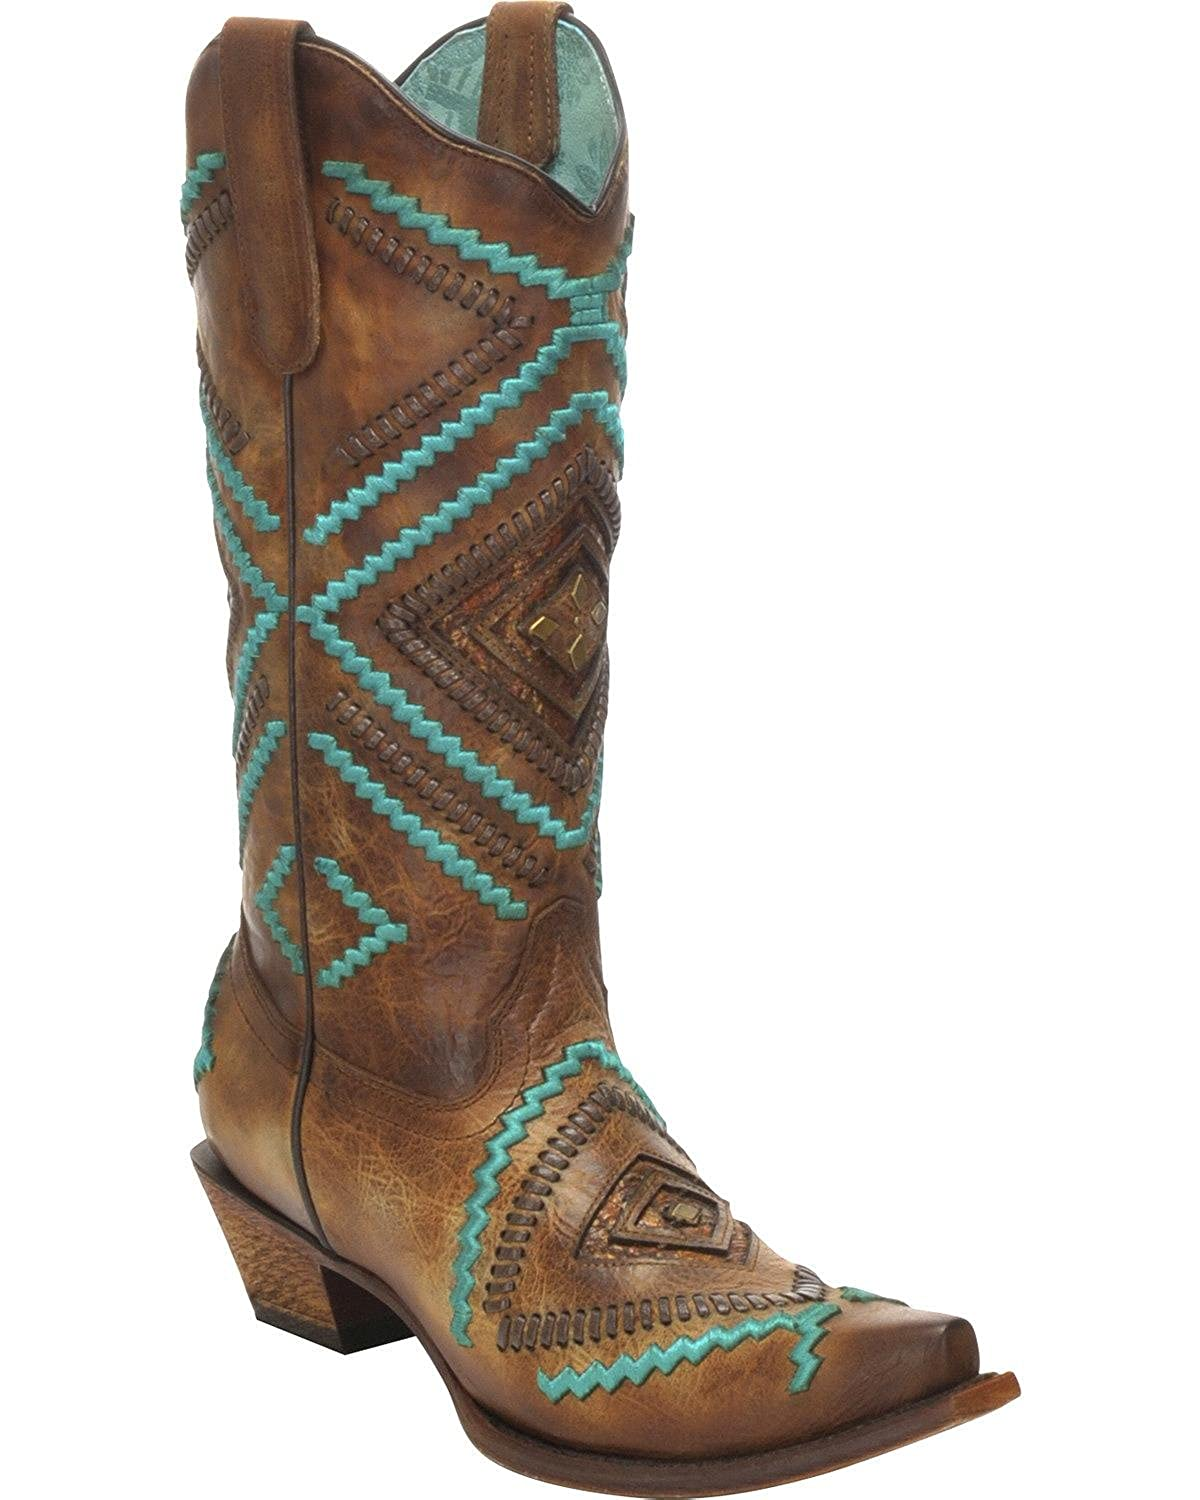 Corral Women's Honey Embroidered Woven Cowgirl Boot Snip Toe - C3134